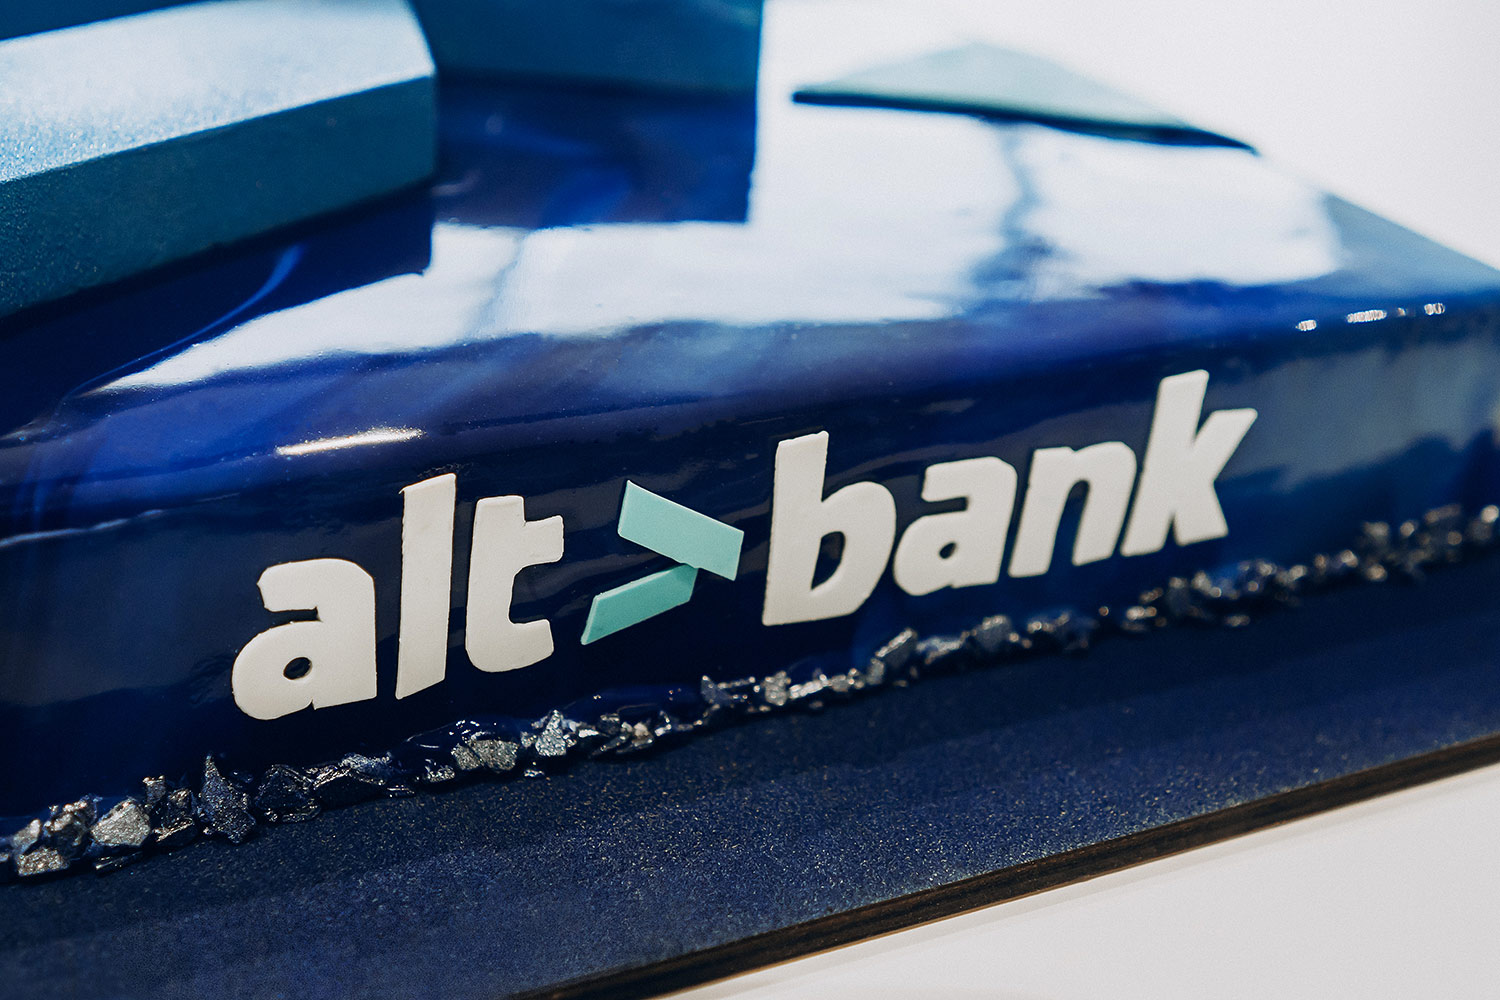 Designer cake with the logo. Altbank.